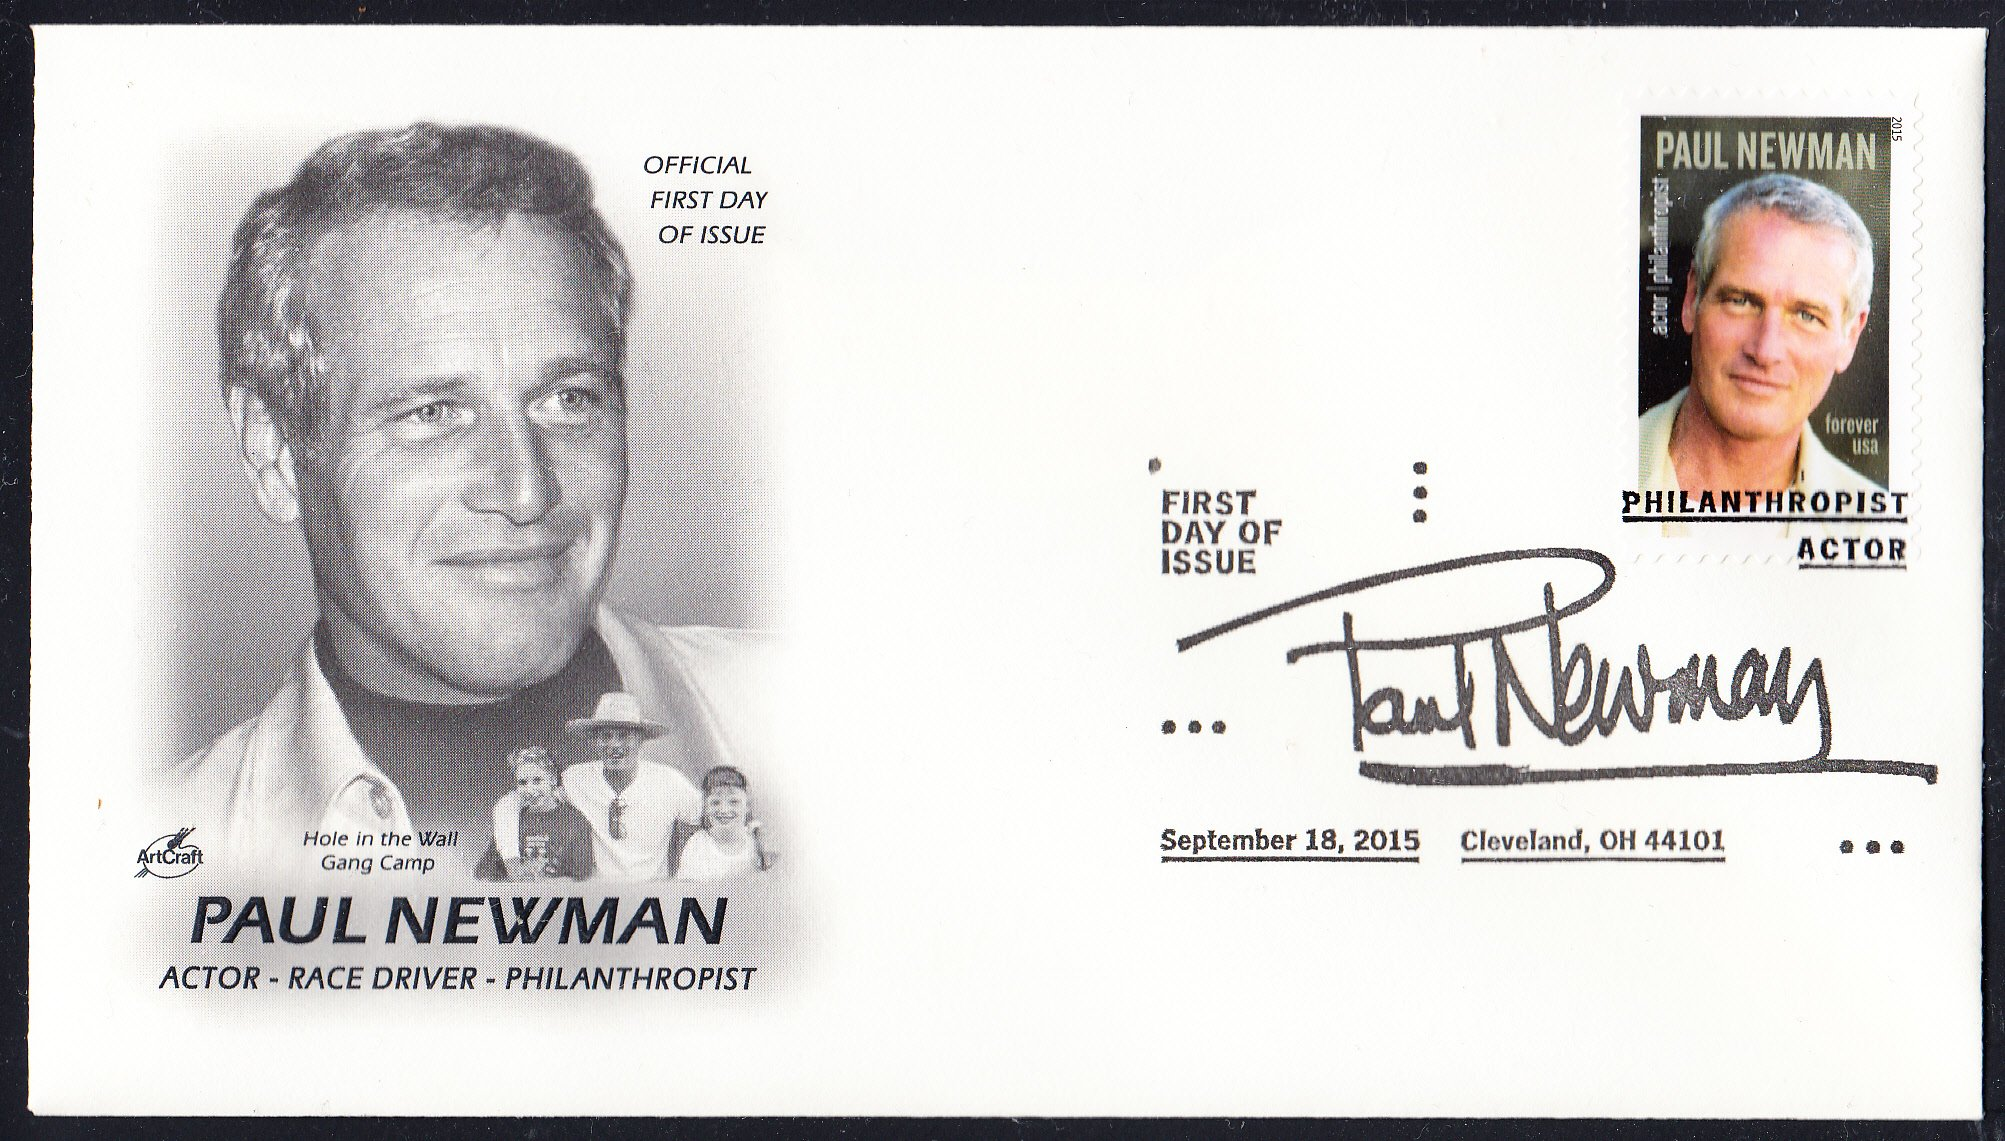 Paul Newman USPS Forever Stamp ArtCraft Collectible First Day Cover